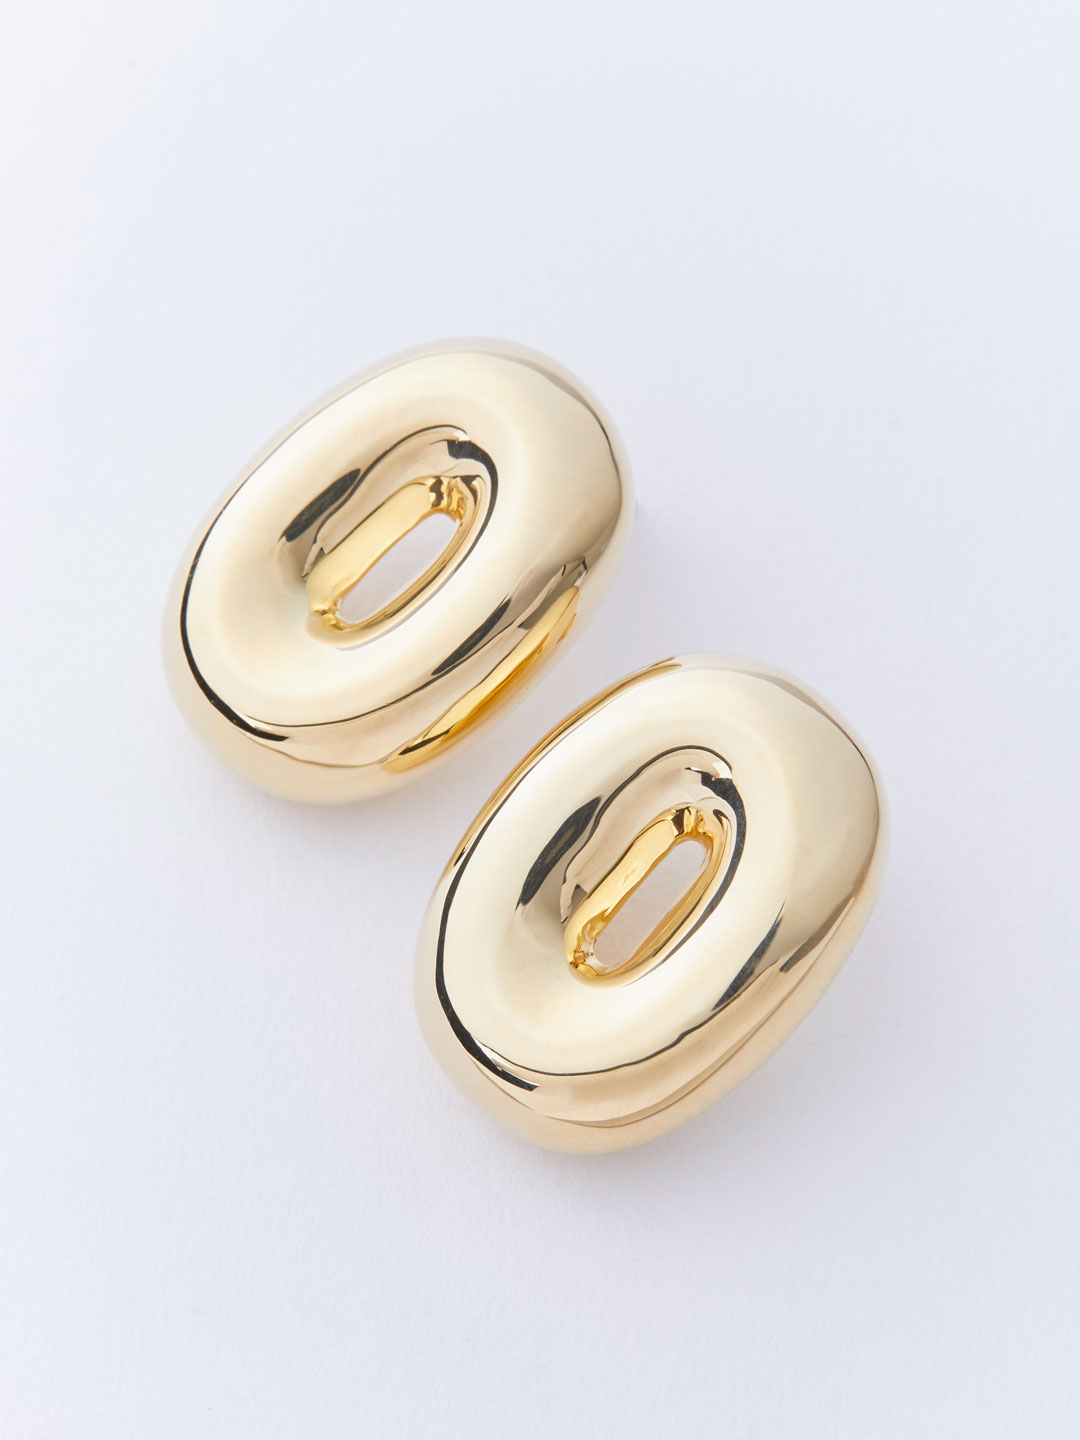 Torus Pierced Earrings - Gold